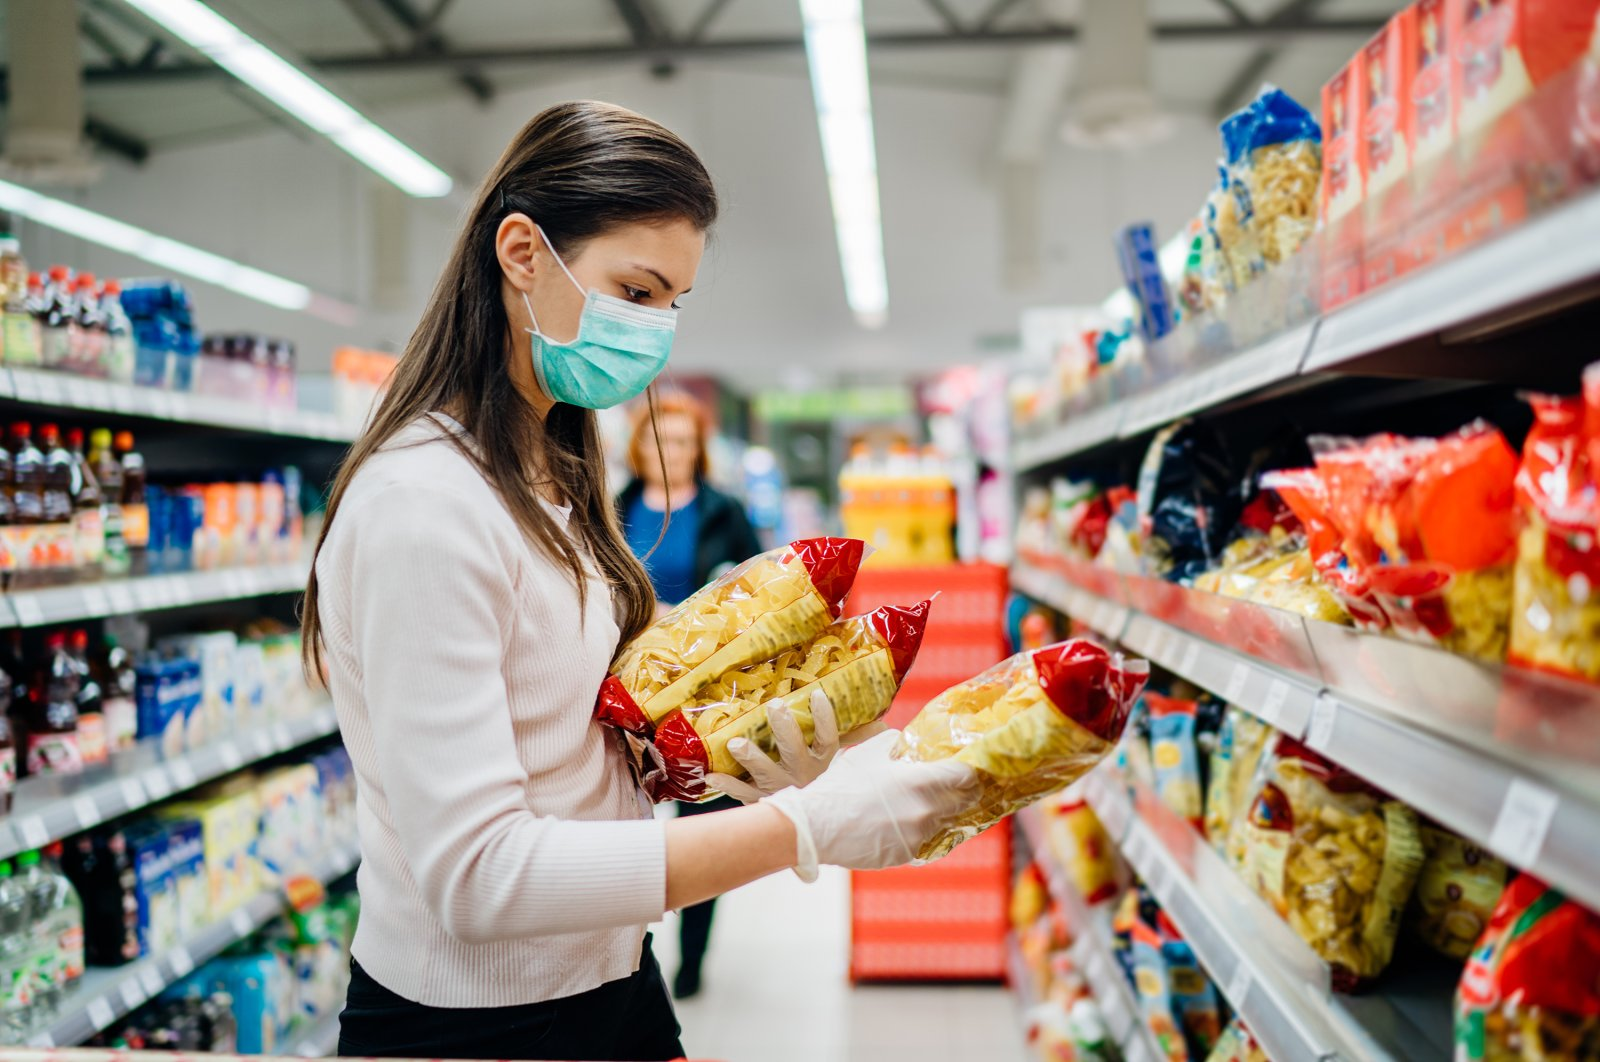 Baby Boomers and even Millennials are used to stocking but it's something new for Gen Z. (Shutterstock Photo)